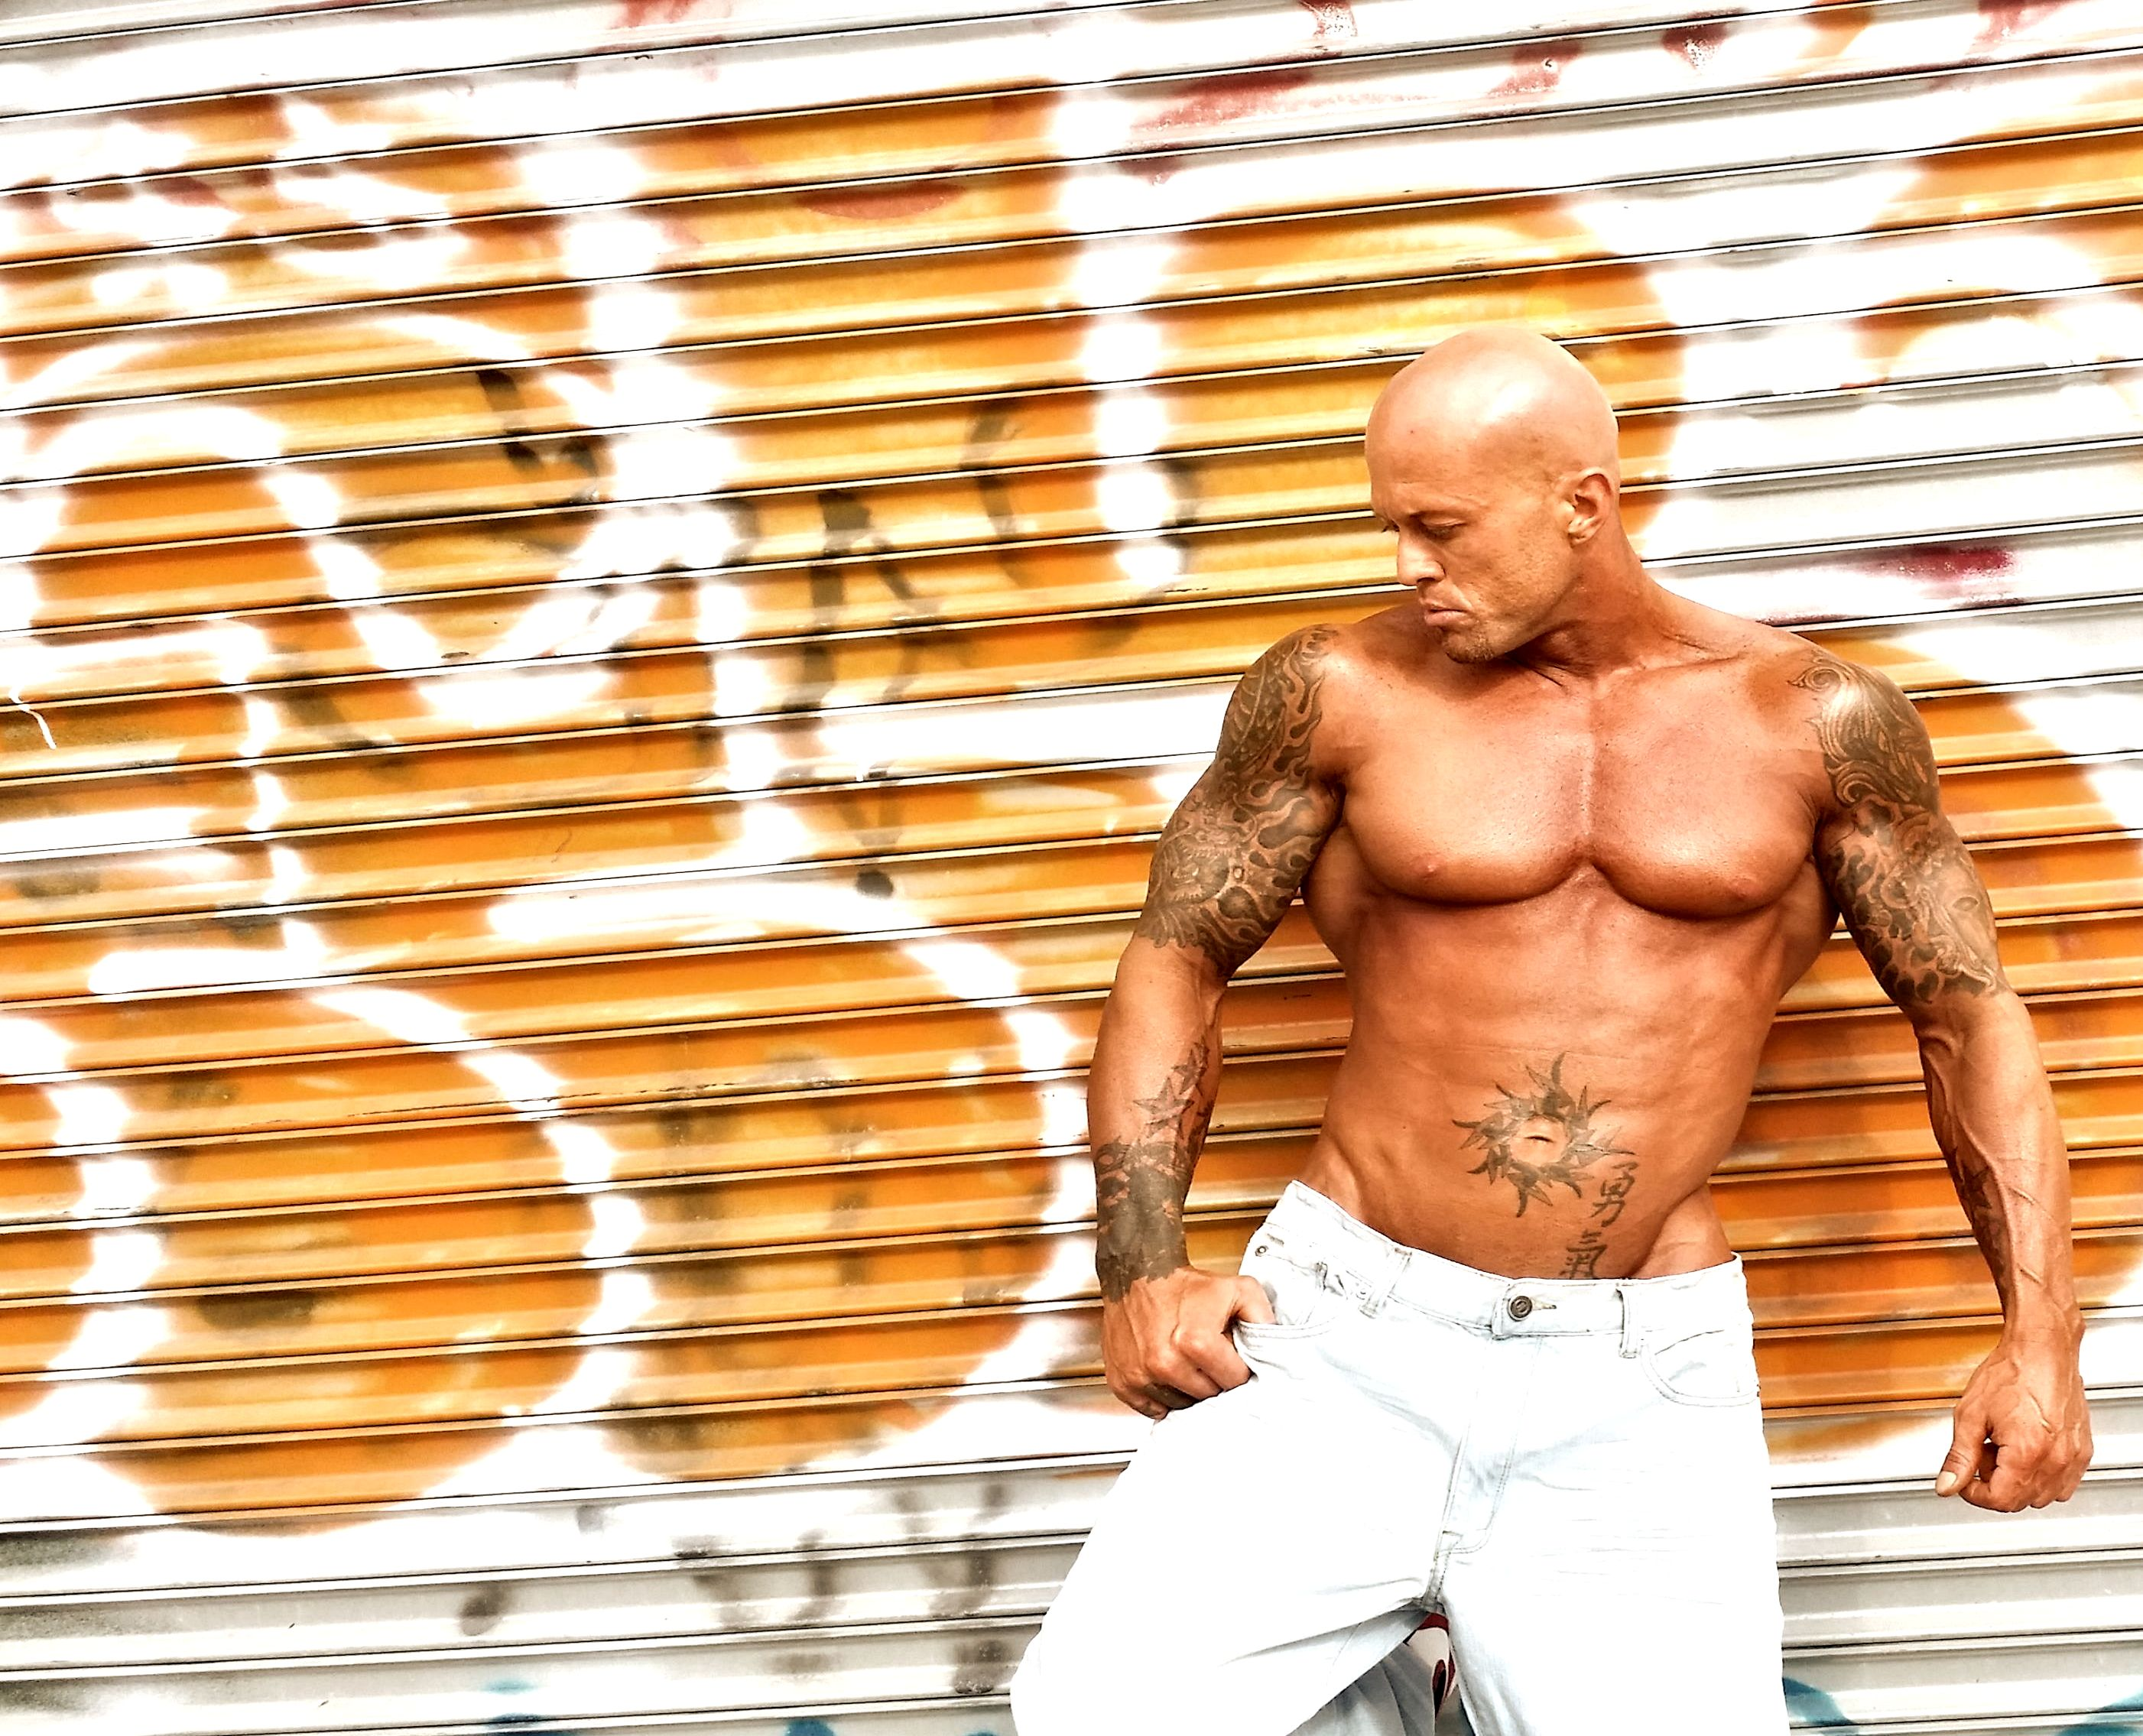 Tattooed Physique Model John Quinlan Brooklyn Shoot